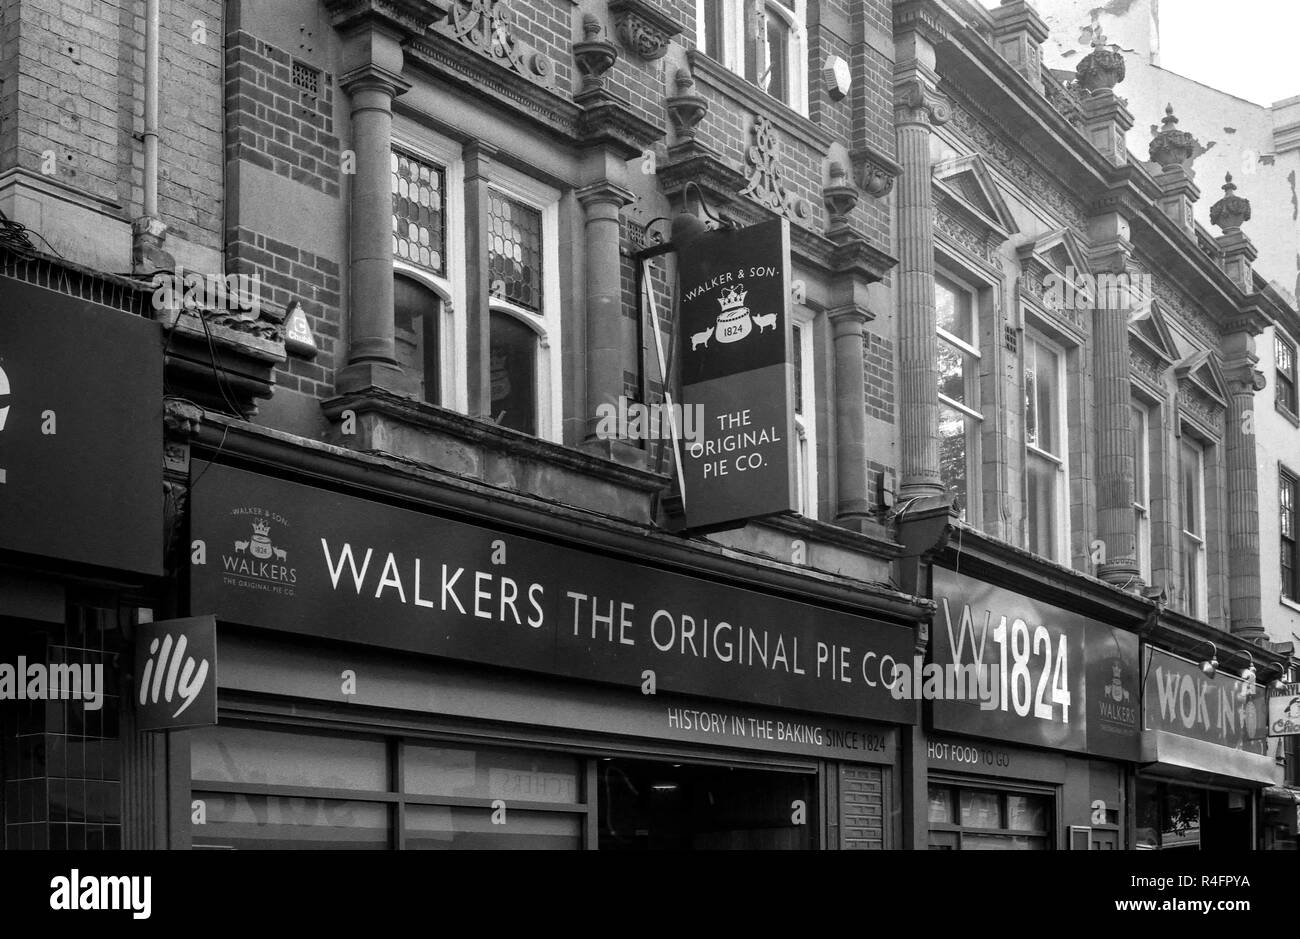 Walkers The Original Pie Co. in Leicester City shot on a Pentax K1000 slr camera - Stock Image